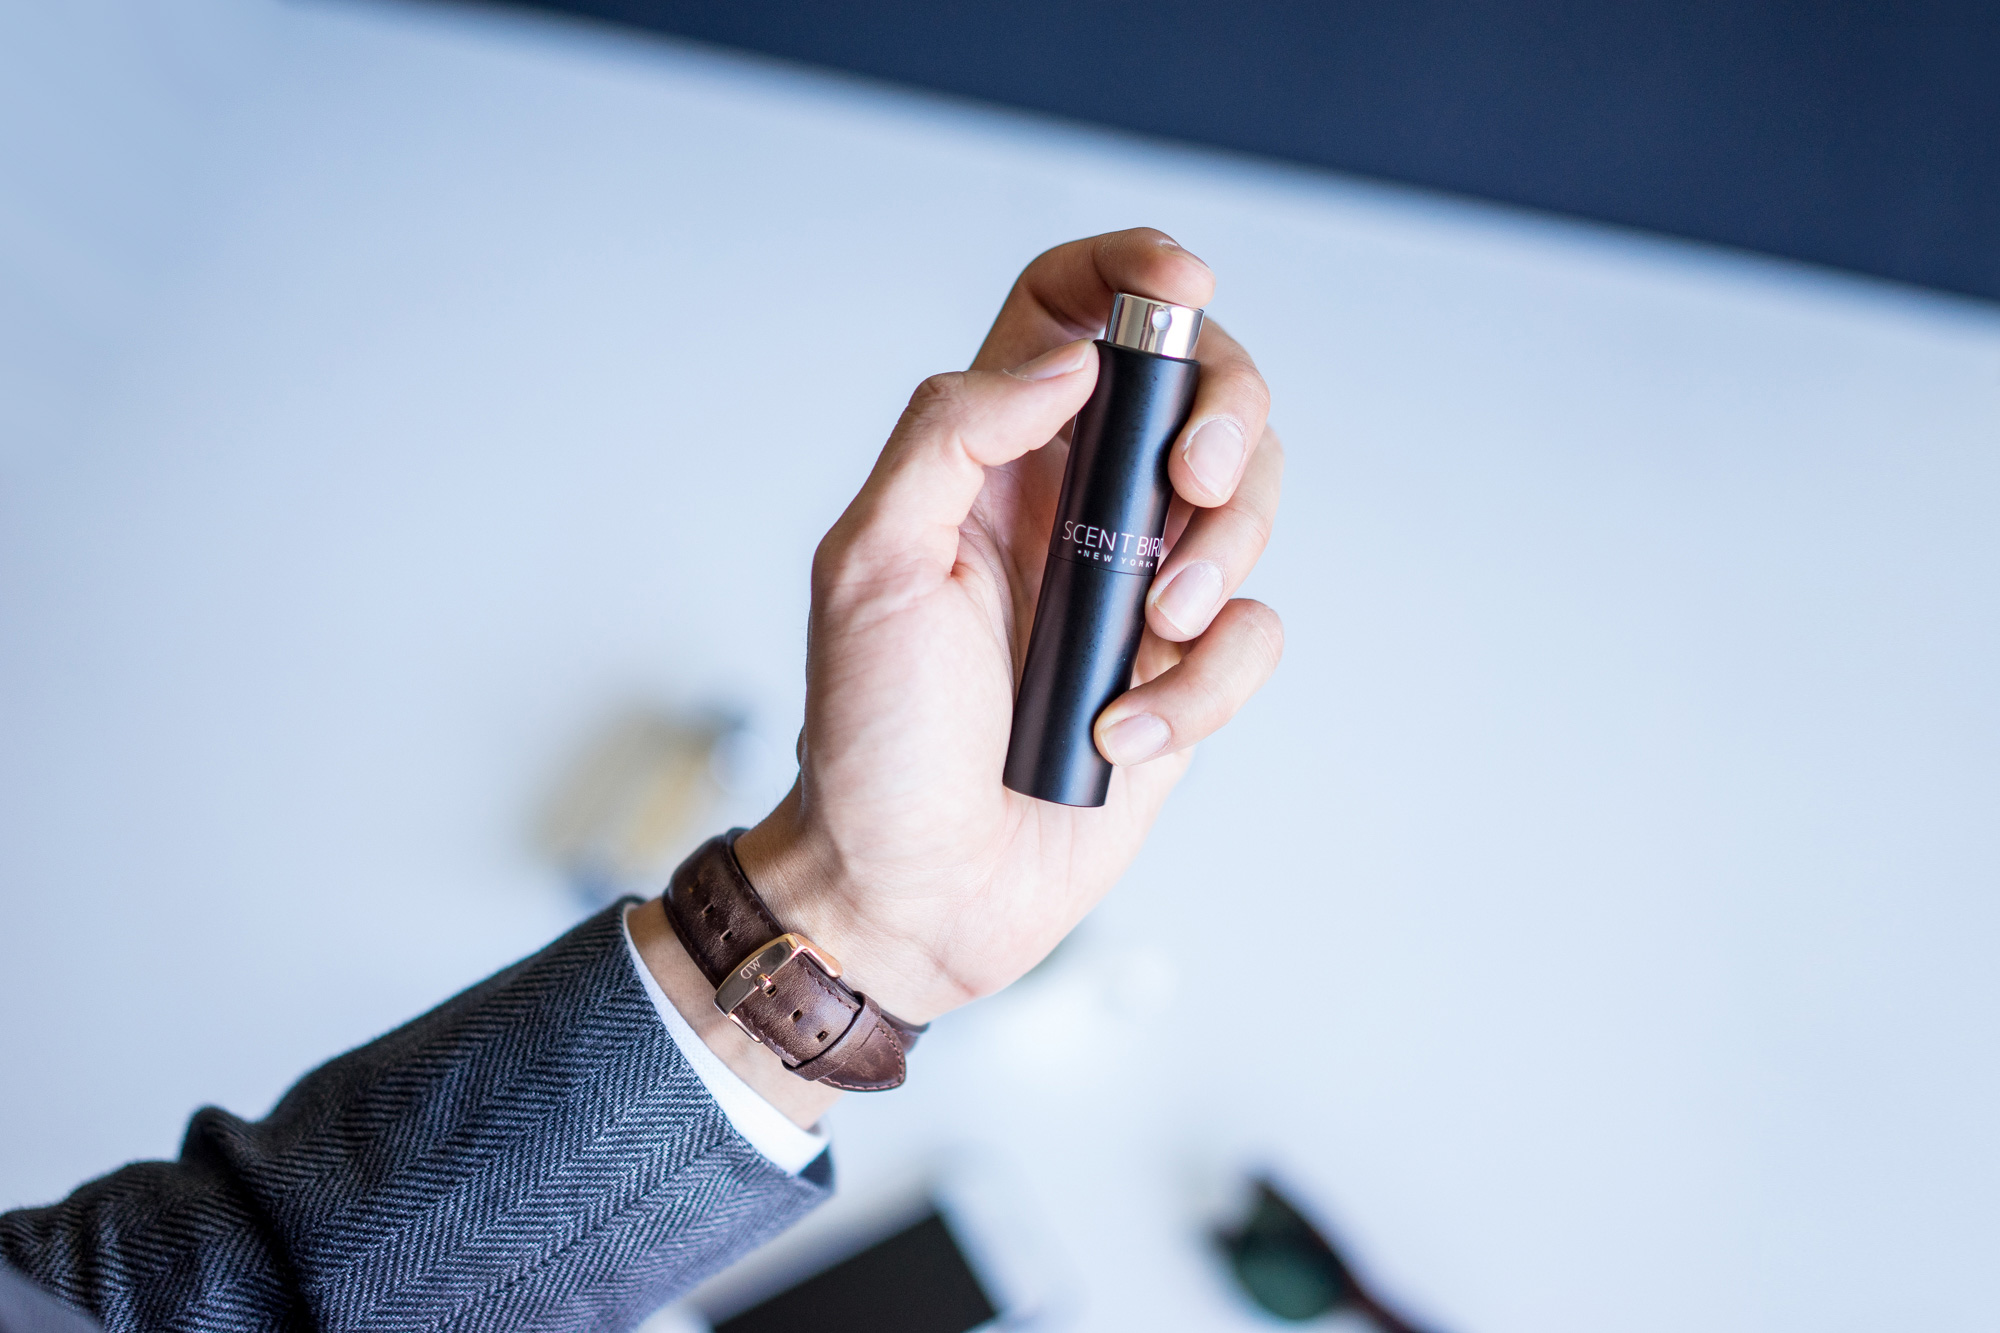 mens-fashion-blog-scentbird-studio-2